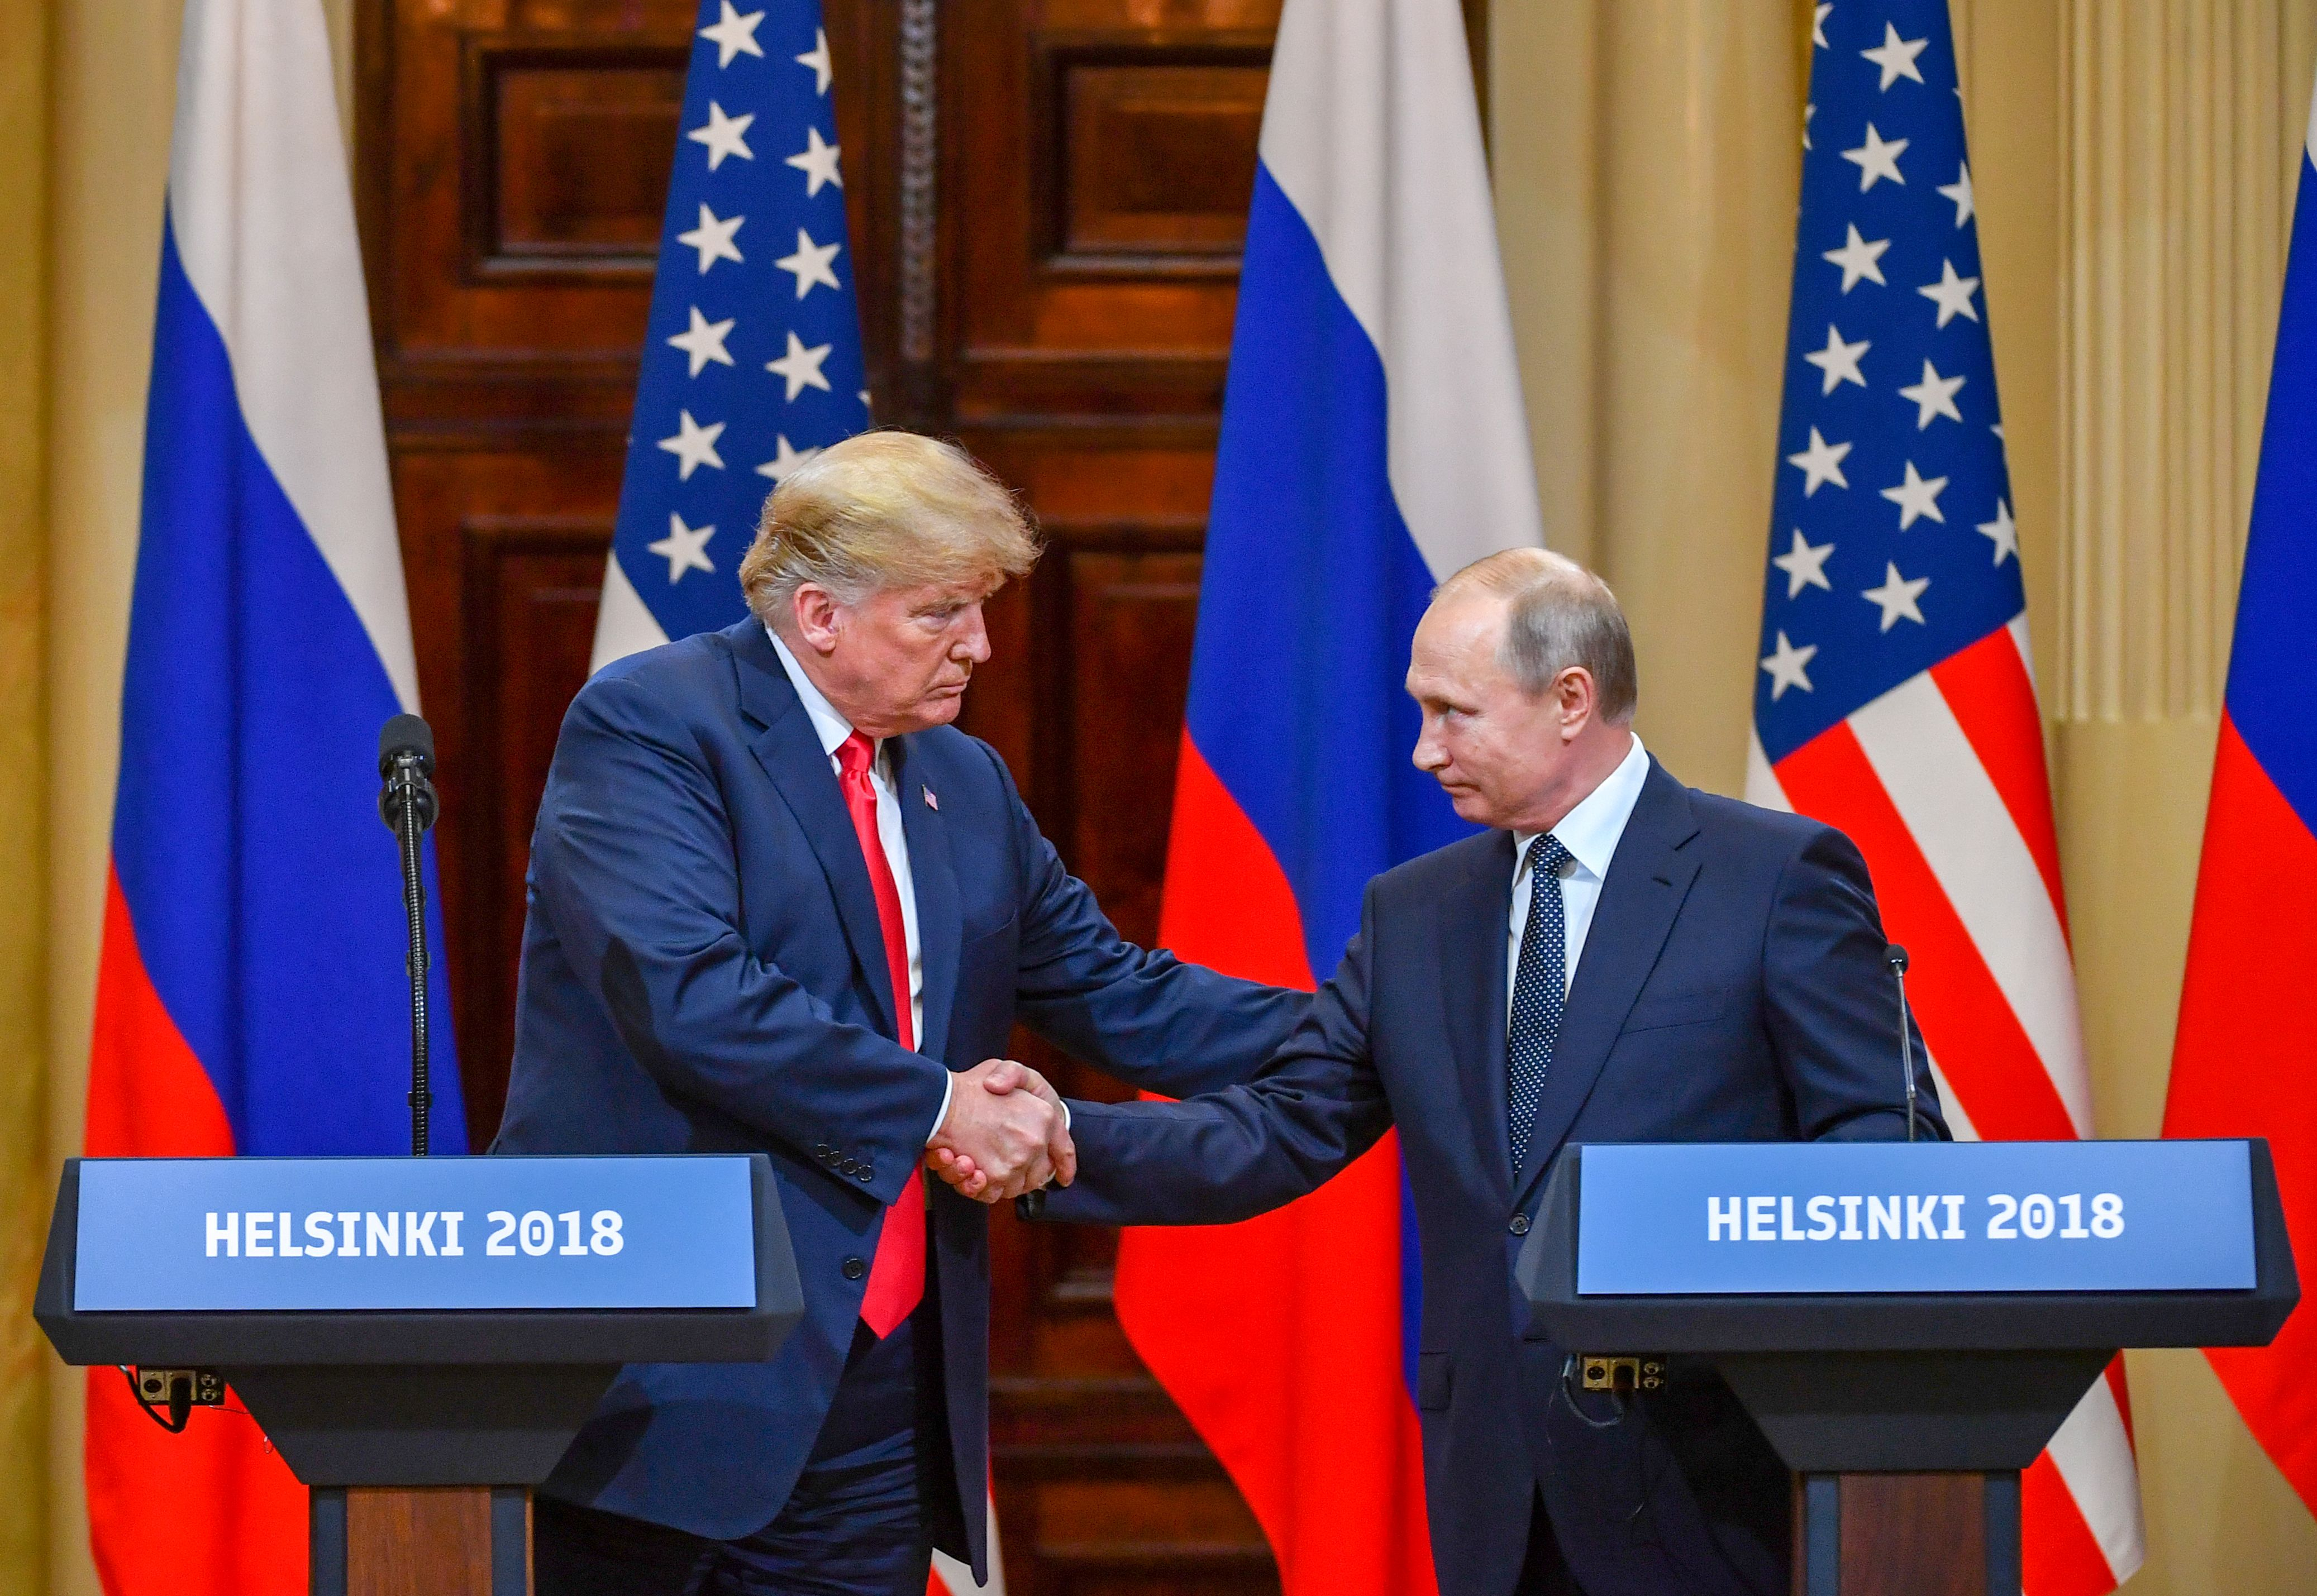 President Donald Trump and Russia's President Vladimir Putin shake hands before attending a joint press conference after a meeting at the Presidential Palace in Helsinki, on July 16, 2018.